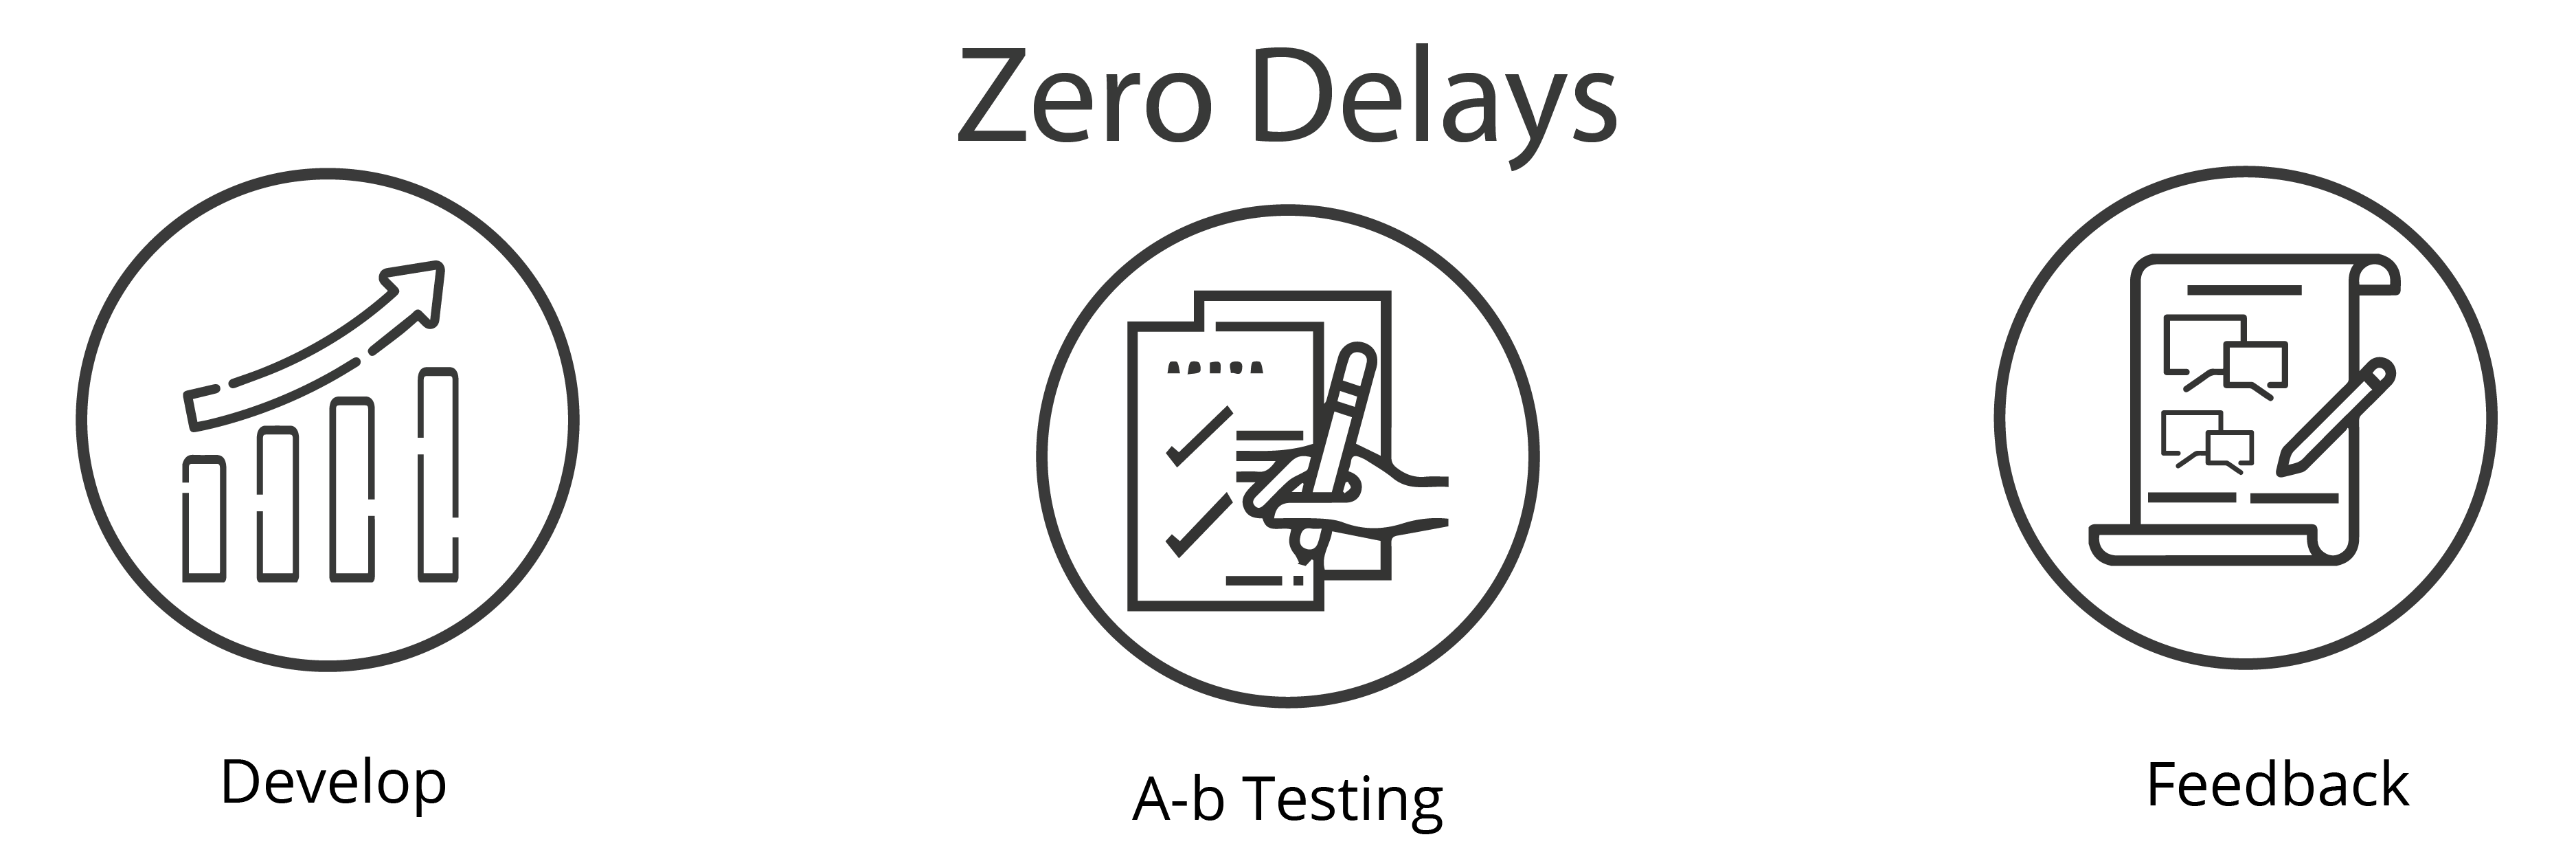 Zero delays in marketing plan execution: Develop, A-B Testing, Feedback